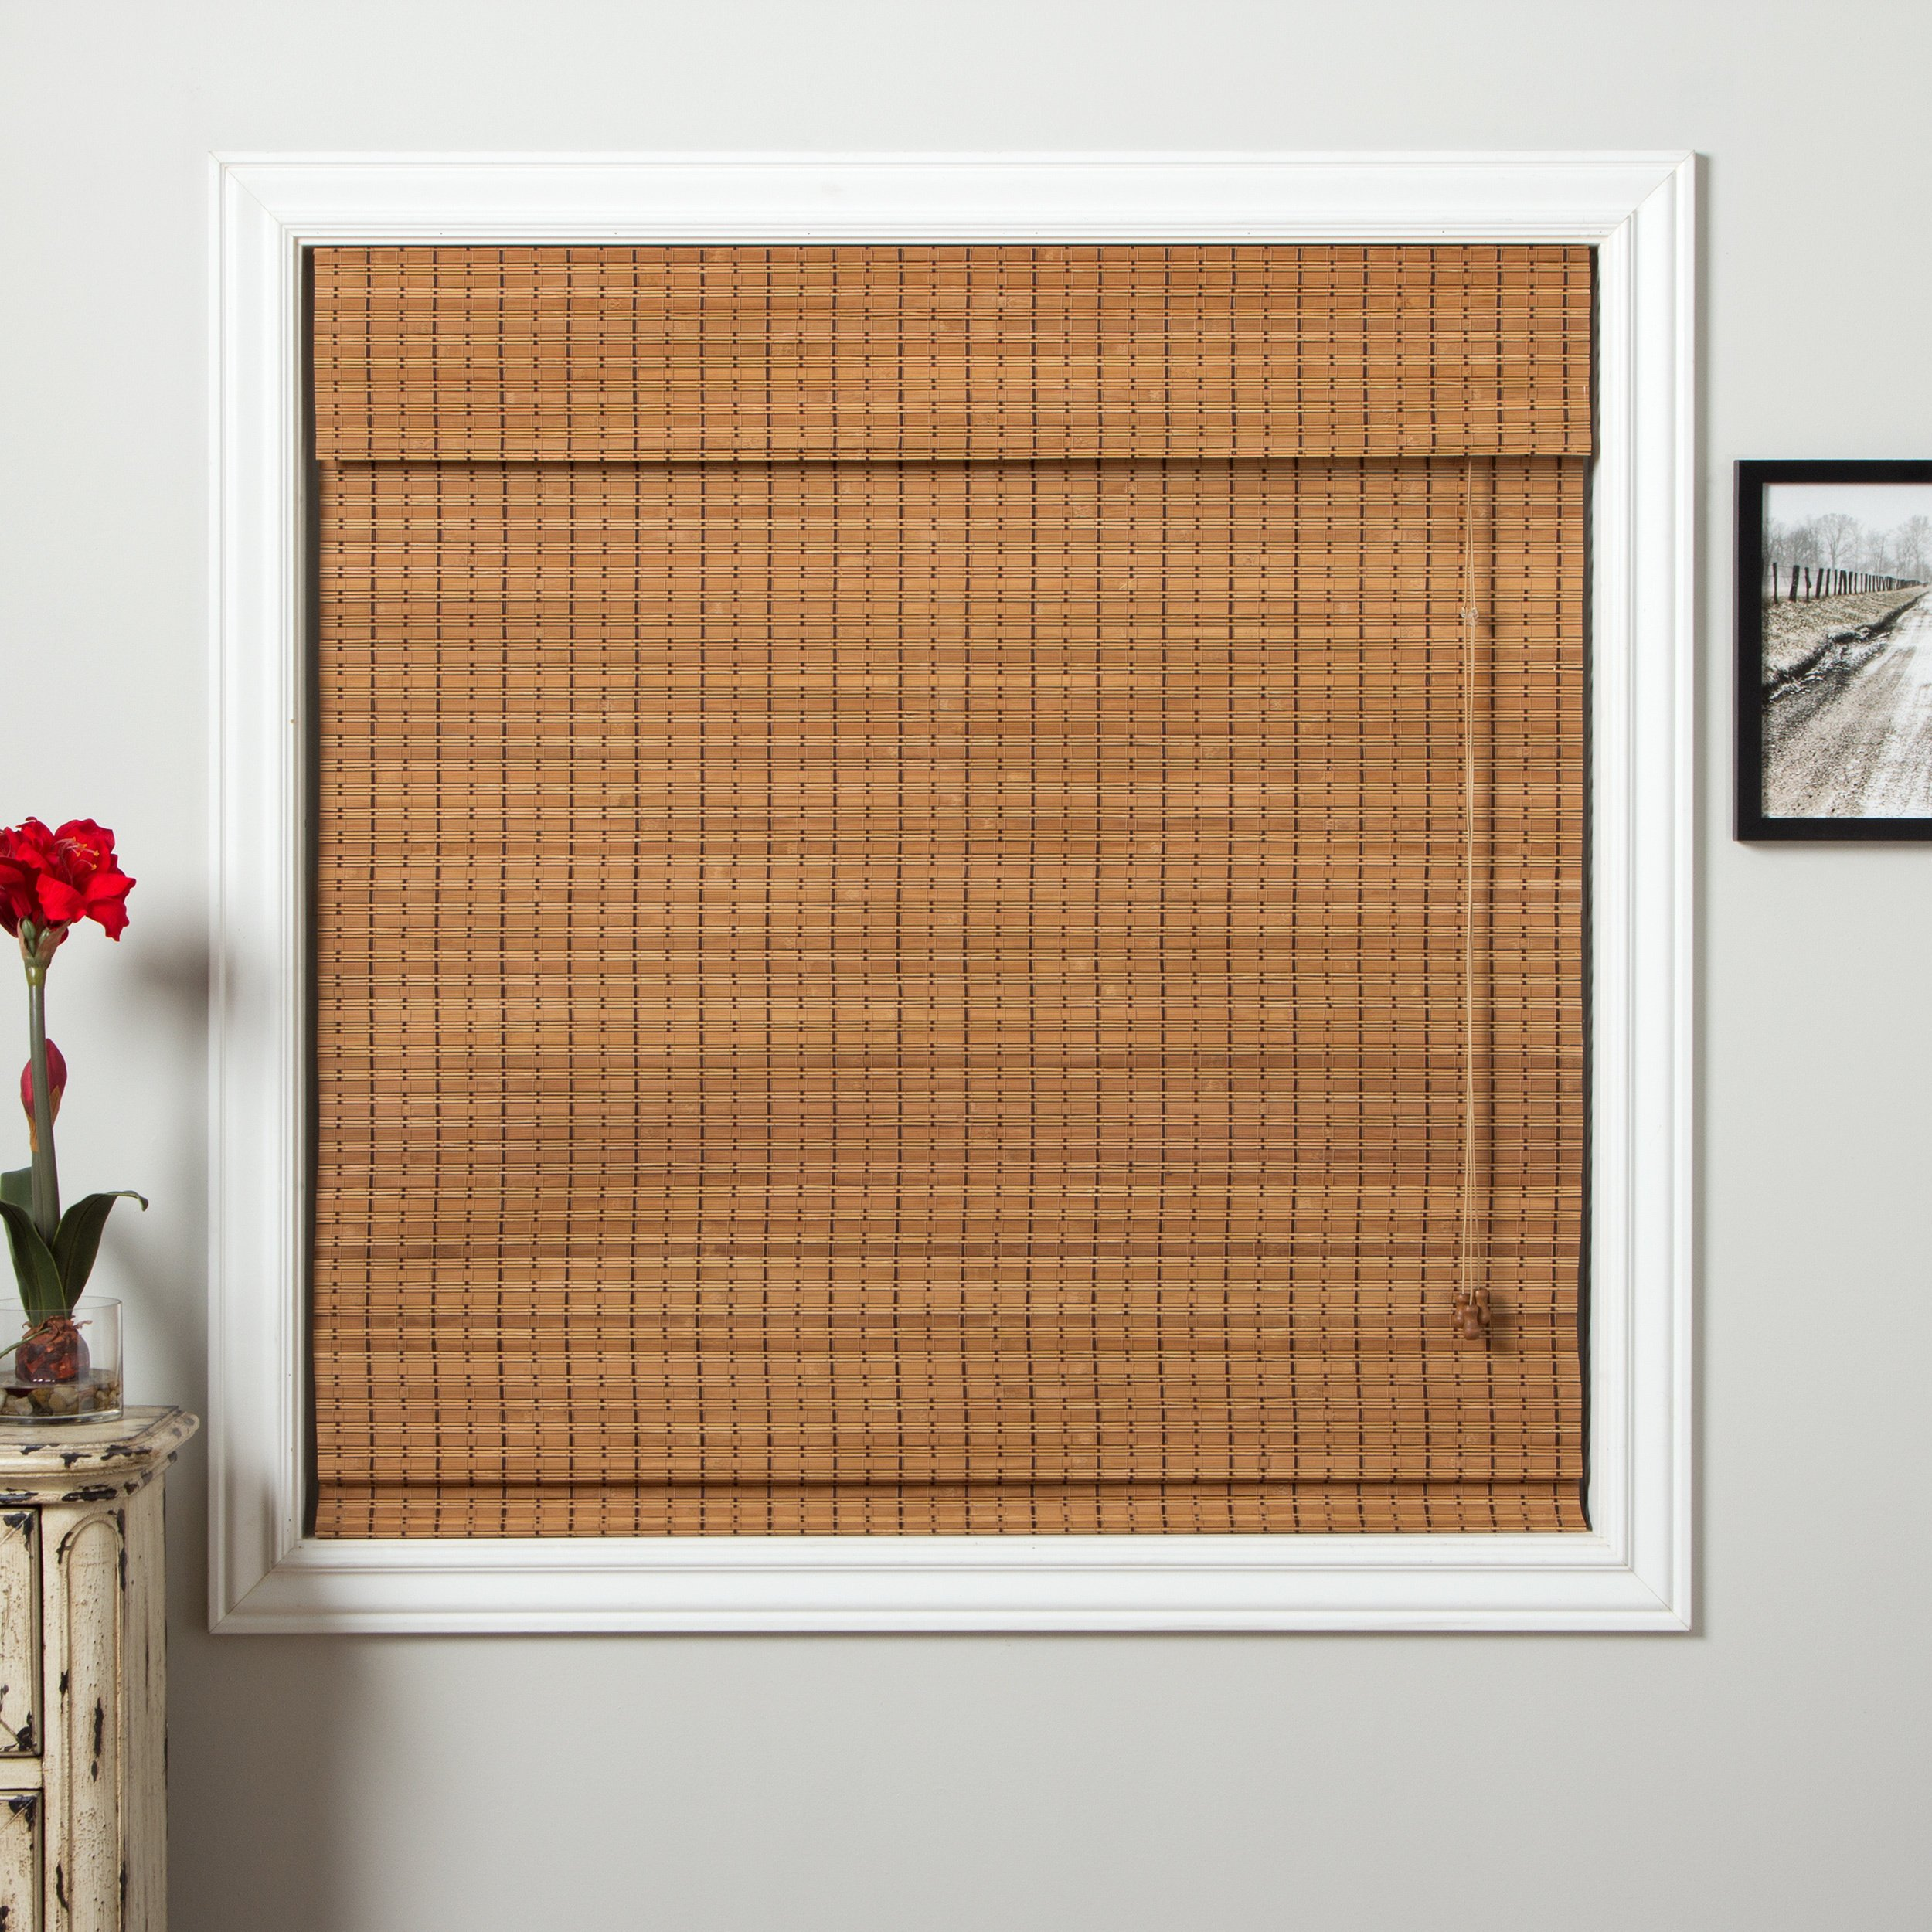 1 Piece 71''Wx74''L Brown Grain Ochre Tan Natural Wood Pull Up Bamboo Blind Home Decor Rustic Roman Shade Horizontal Slat Elegant Beautiful Perfect Fit Nature Window Treatment Allows Gentle Sunlight